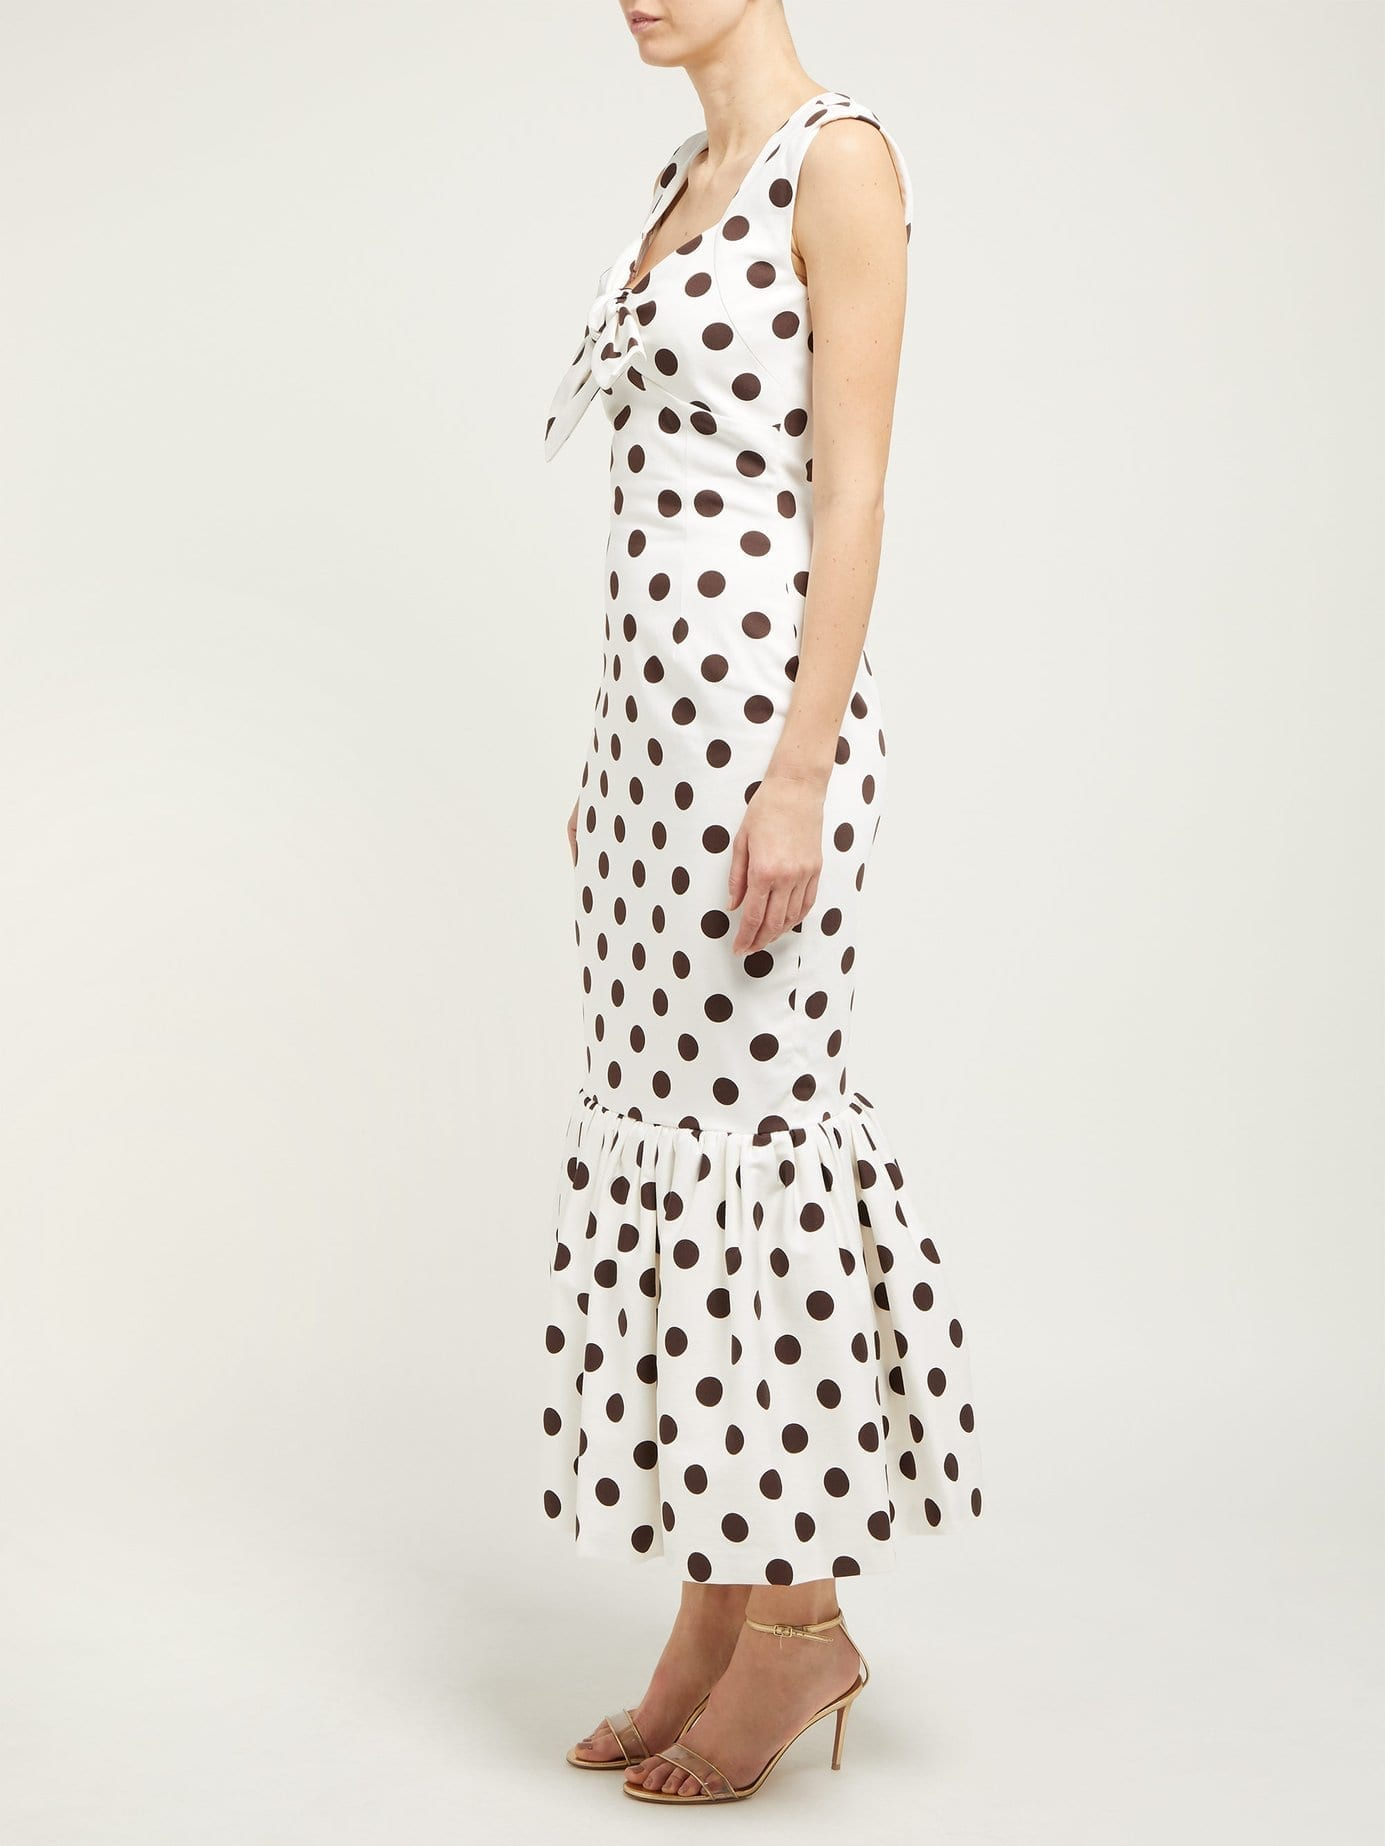 REBECCA DE RAVENEL Polka Dot-Print Cotton-Poplin Midi White Dress